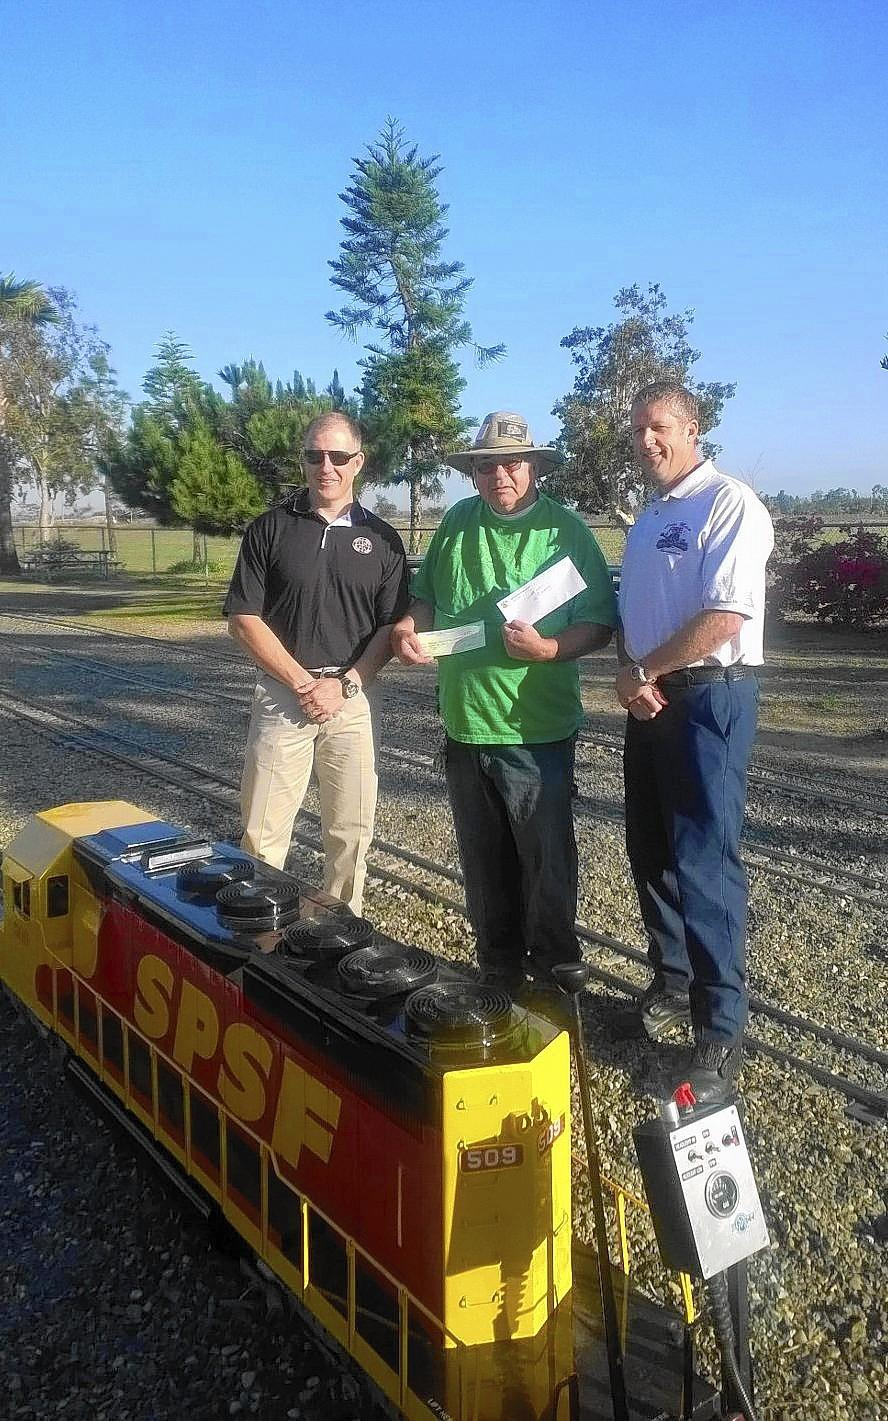 Orange County Model Engineers Vice President of Operations Dixon Sheldon, center, stands with Rob Dimel, left, and Rob Gagne. Dimel, of the Costa Mesa Police Assn., and Gagne, of the Costa Mesa Firefighters Assn., each presented the nonprofit club with a $500 donation Sunday.